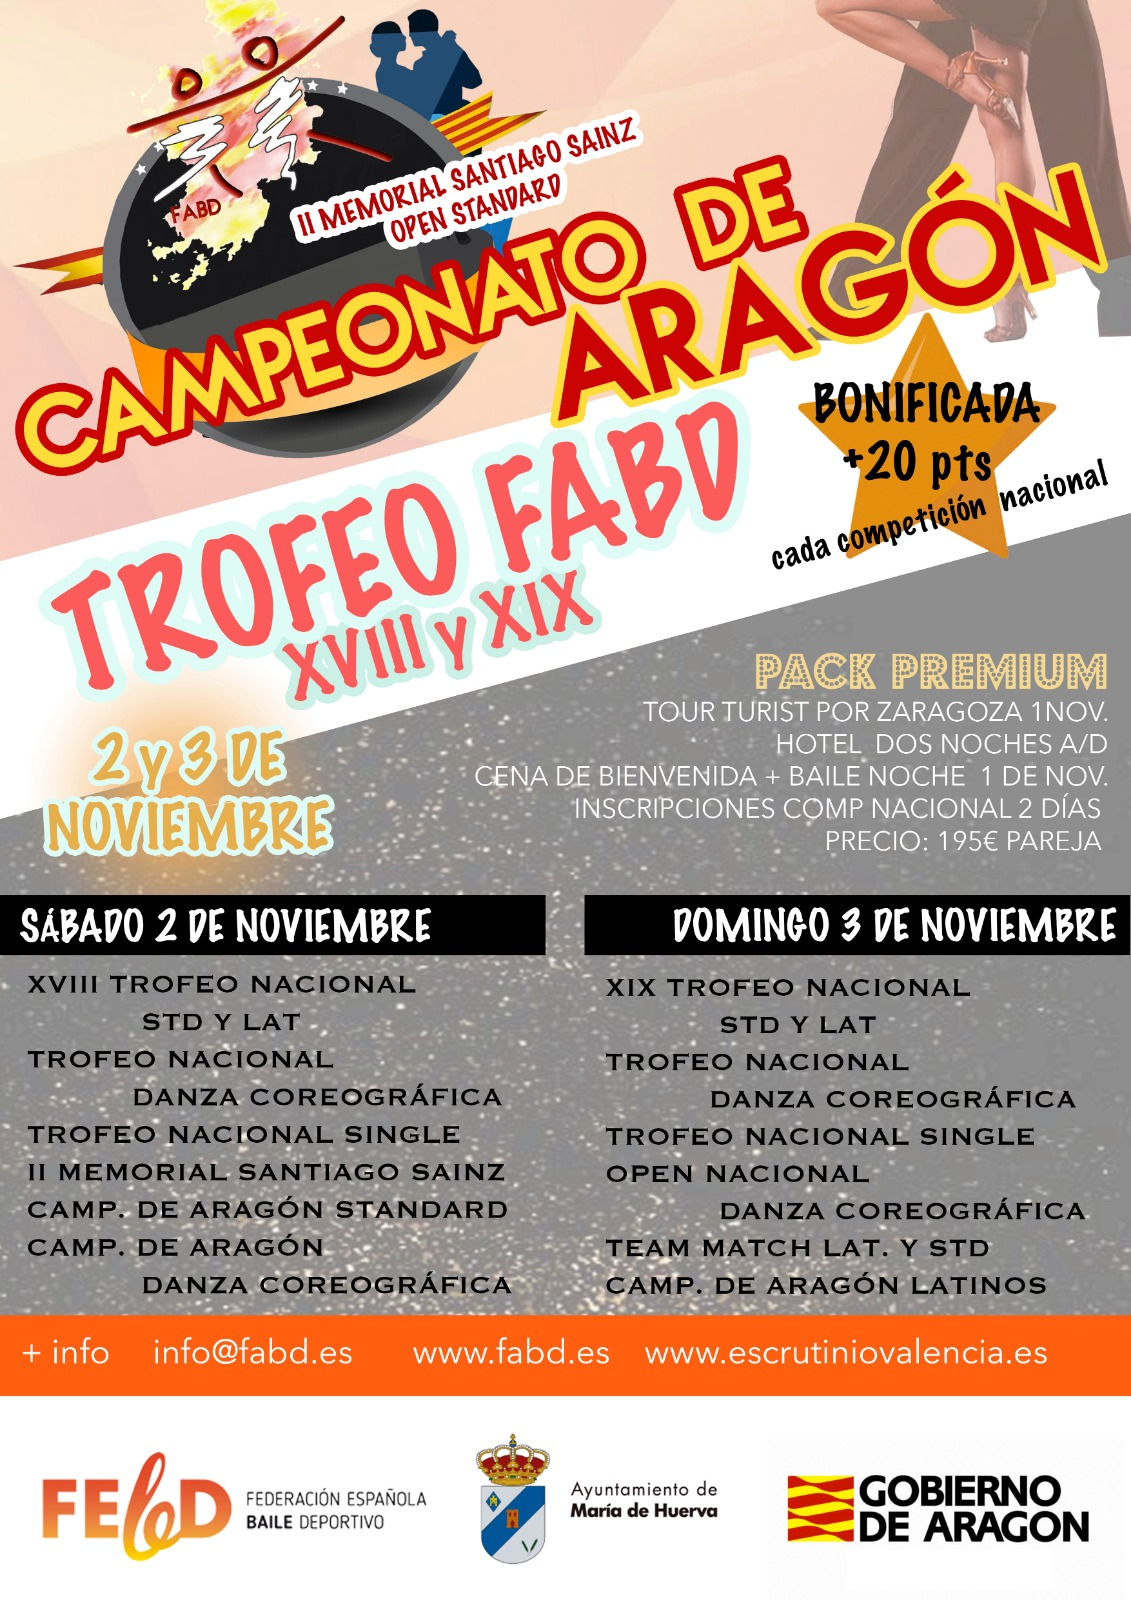 CAMPEONATOS DE ARAGON 2019 - VIDEOS